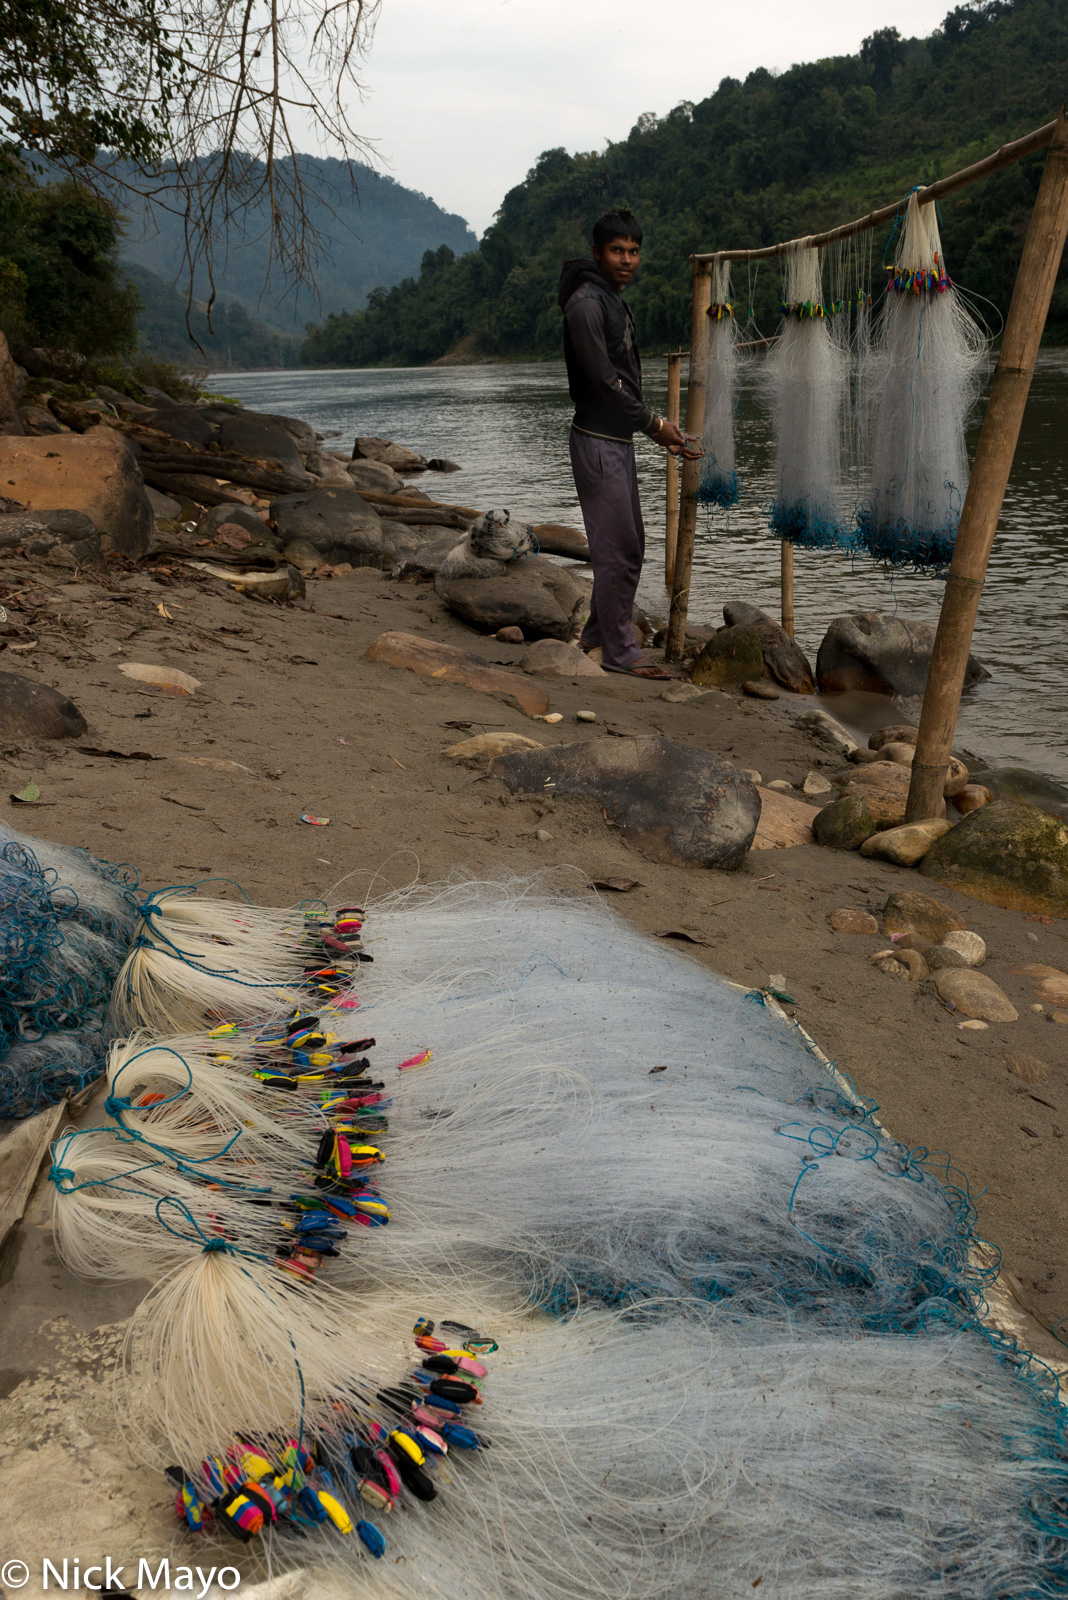 Fishing nets being prepared at Paya in the Siyom valley.